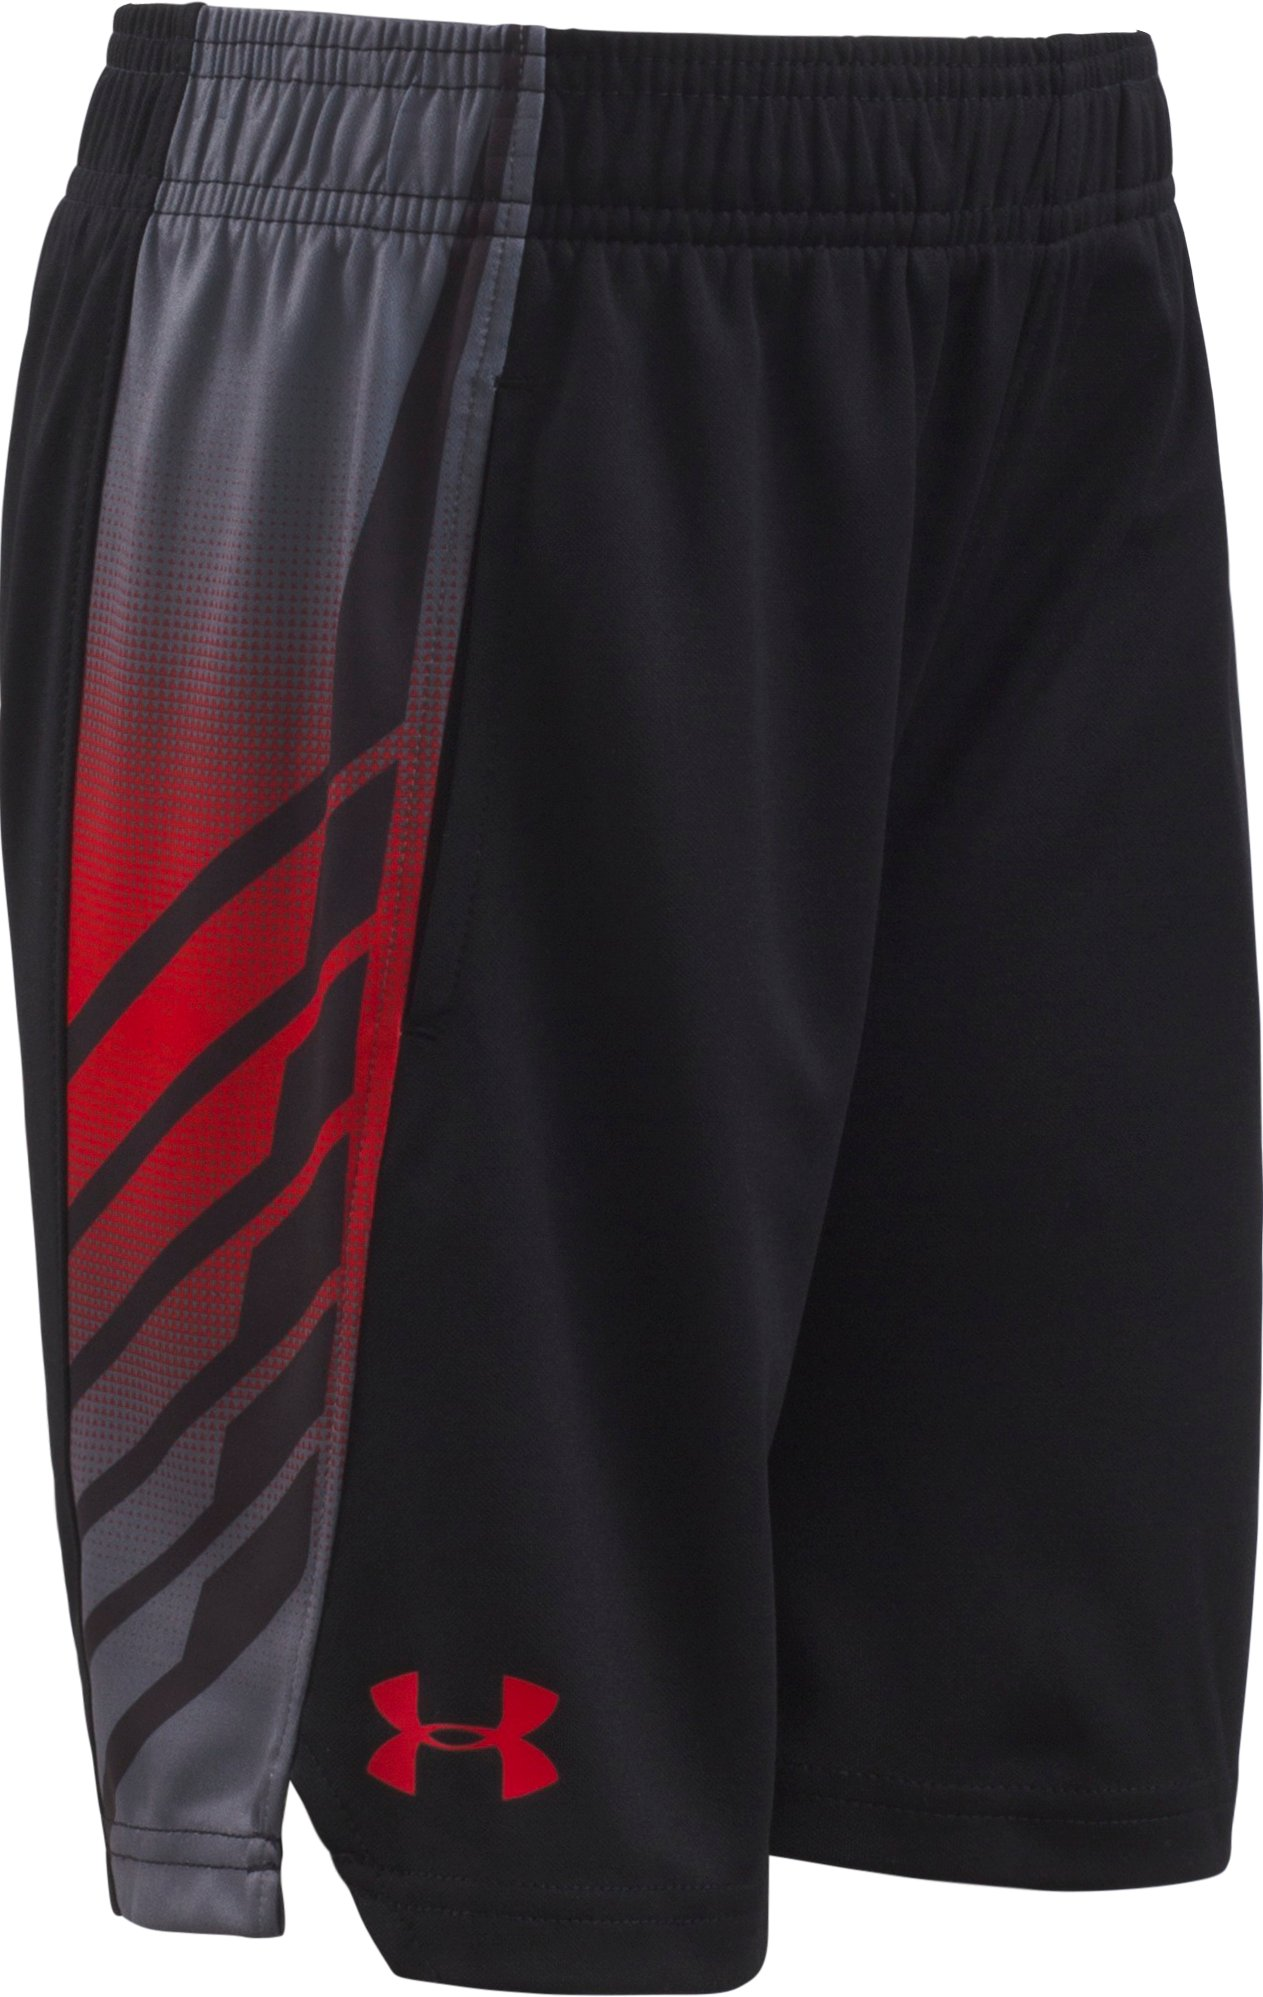 Boys' Toddler UA Select Shorts, Black